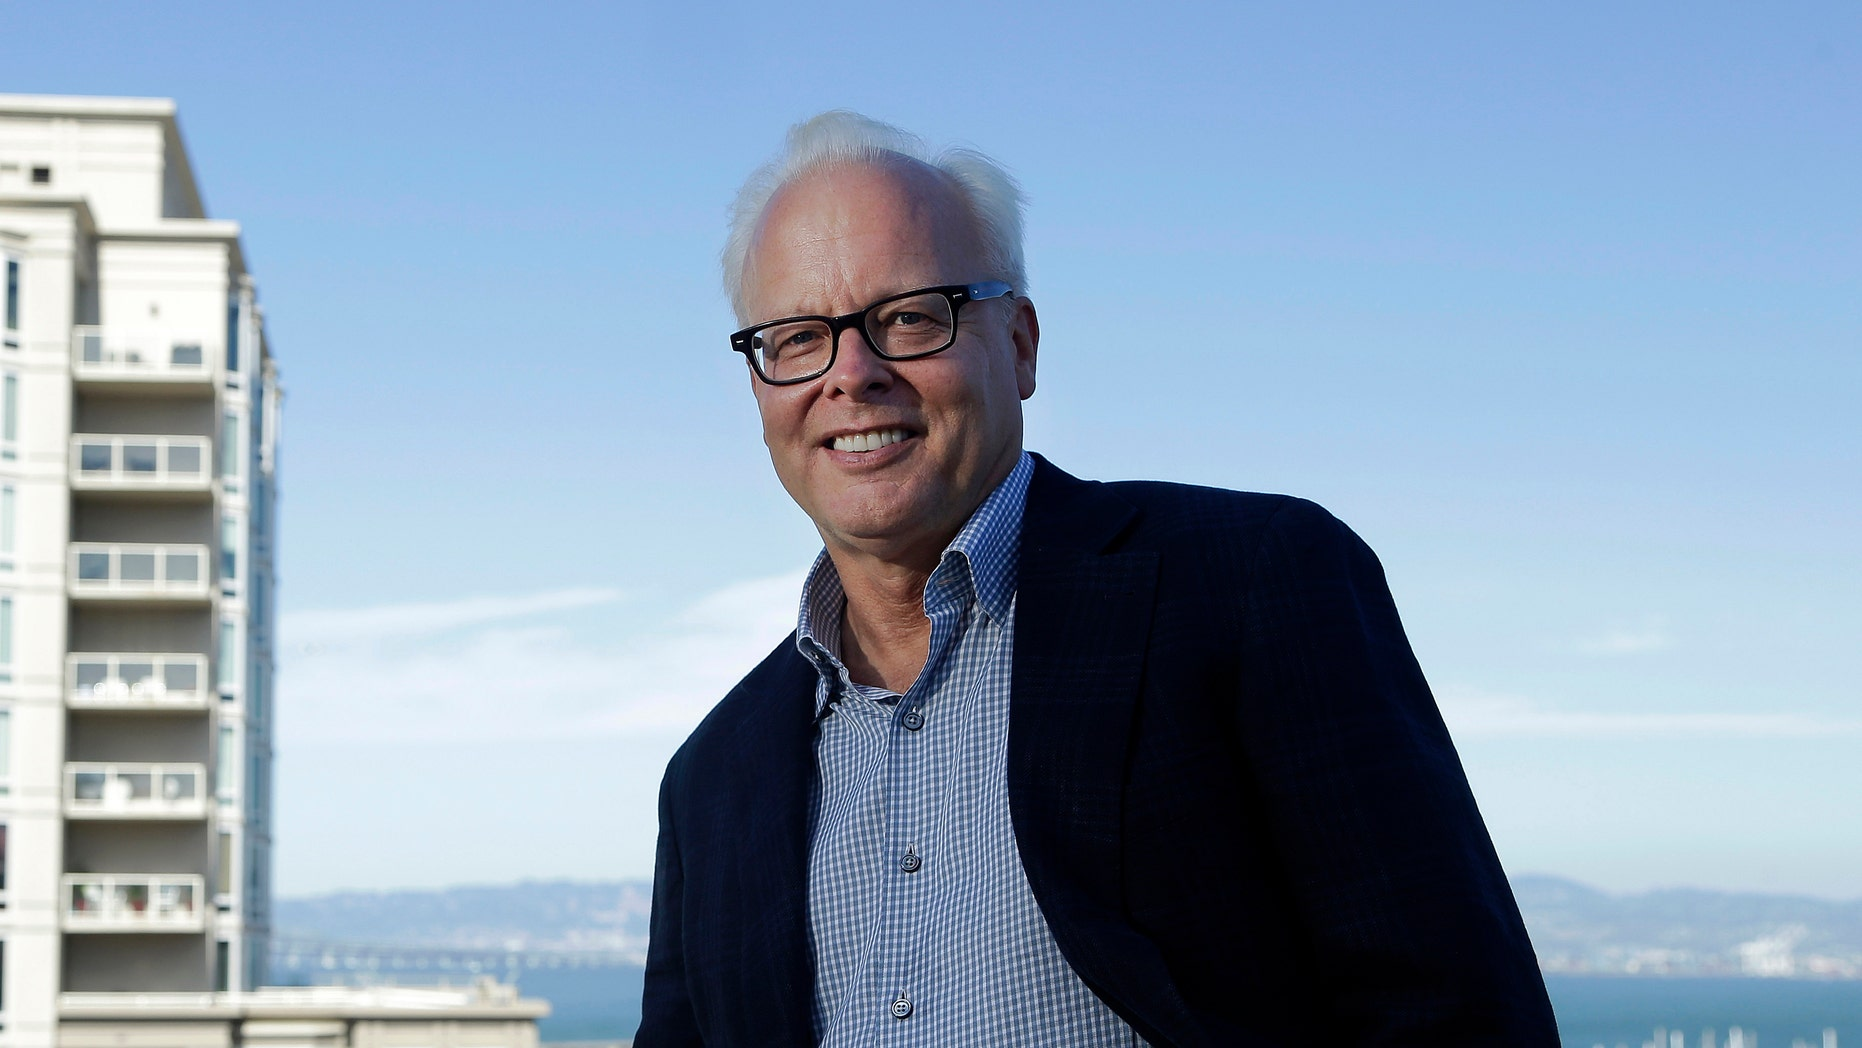 In this Sept. 16, 2014 photo, Ray Ozzie, of the new startup Talko, poses for photographs in San Francisco. Ozzie.